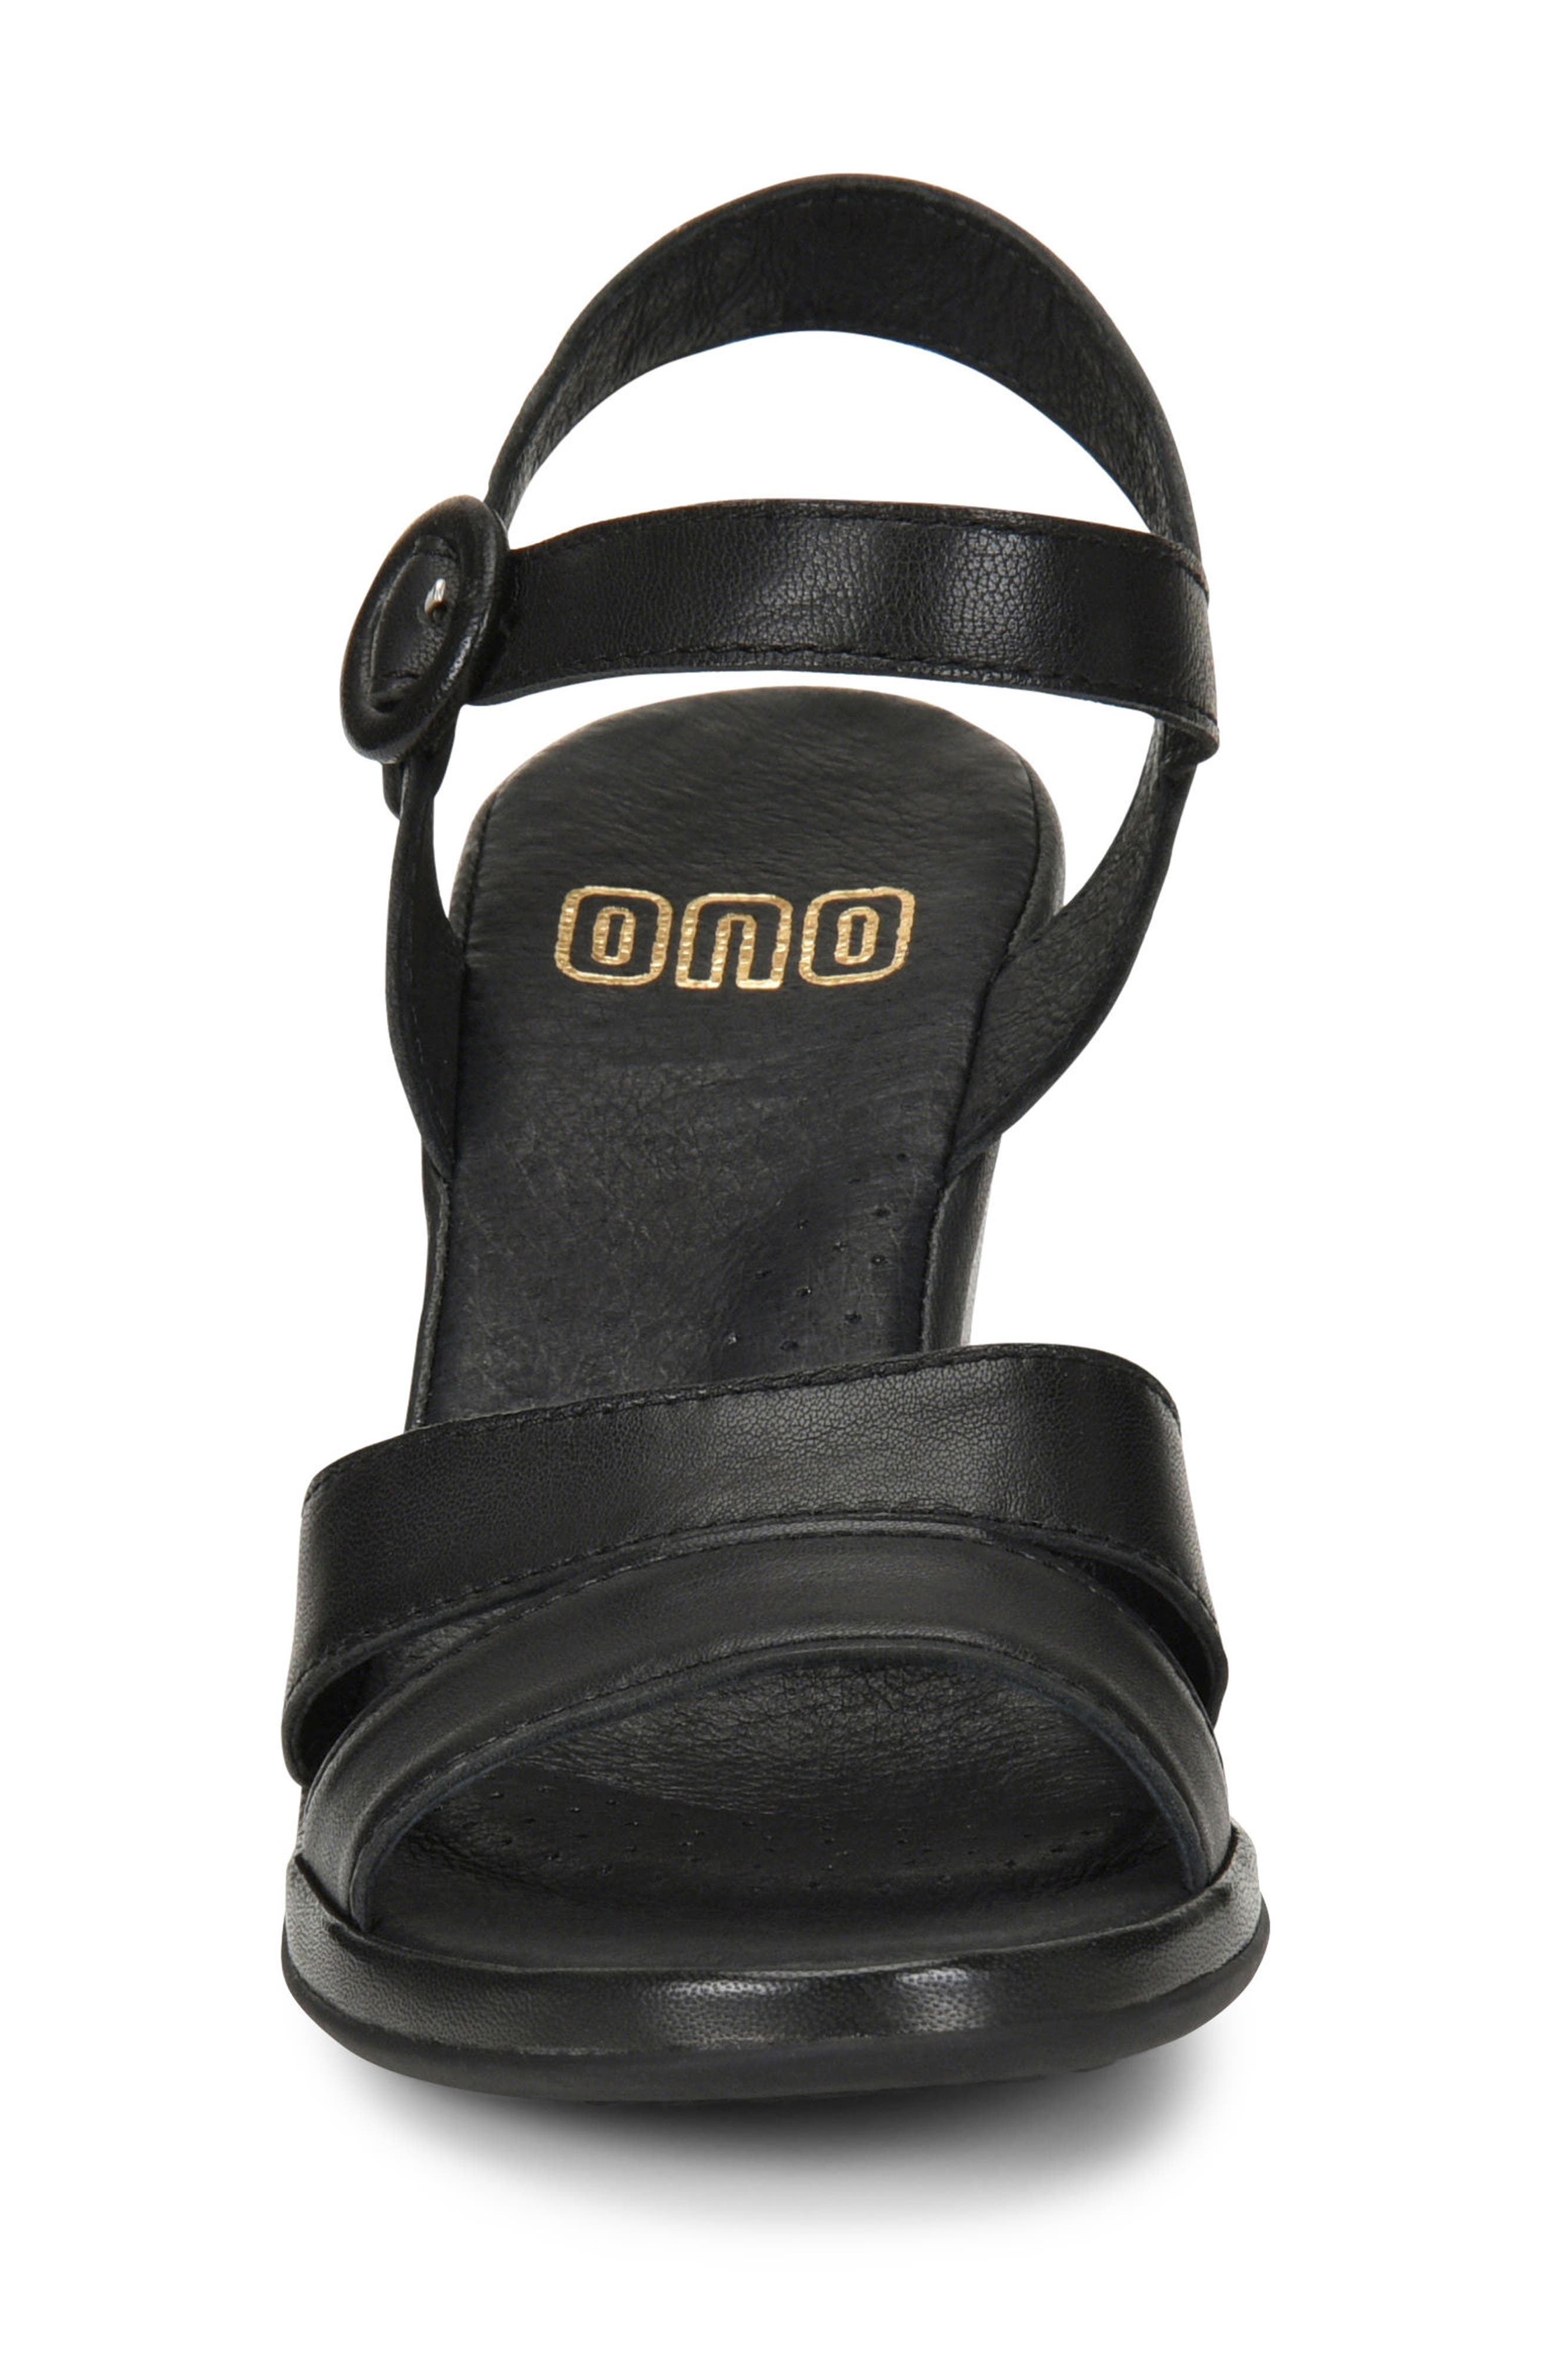 Hydro Wedge Sandal,                             Alternate thumbnail 4, color,                             BLACK LEATHER